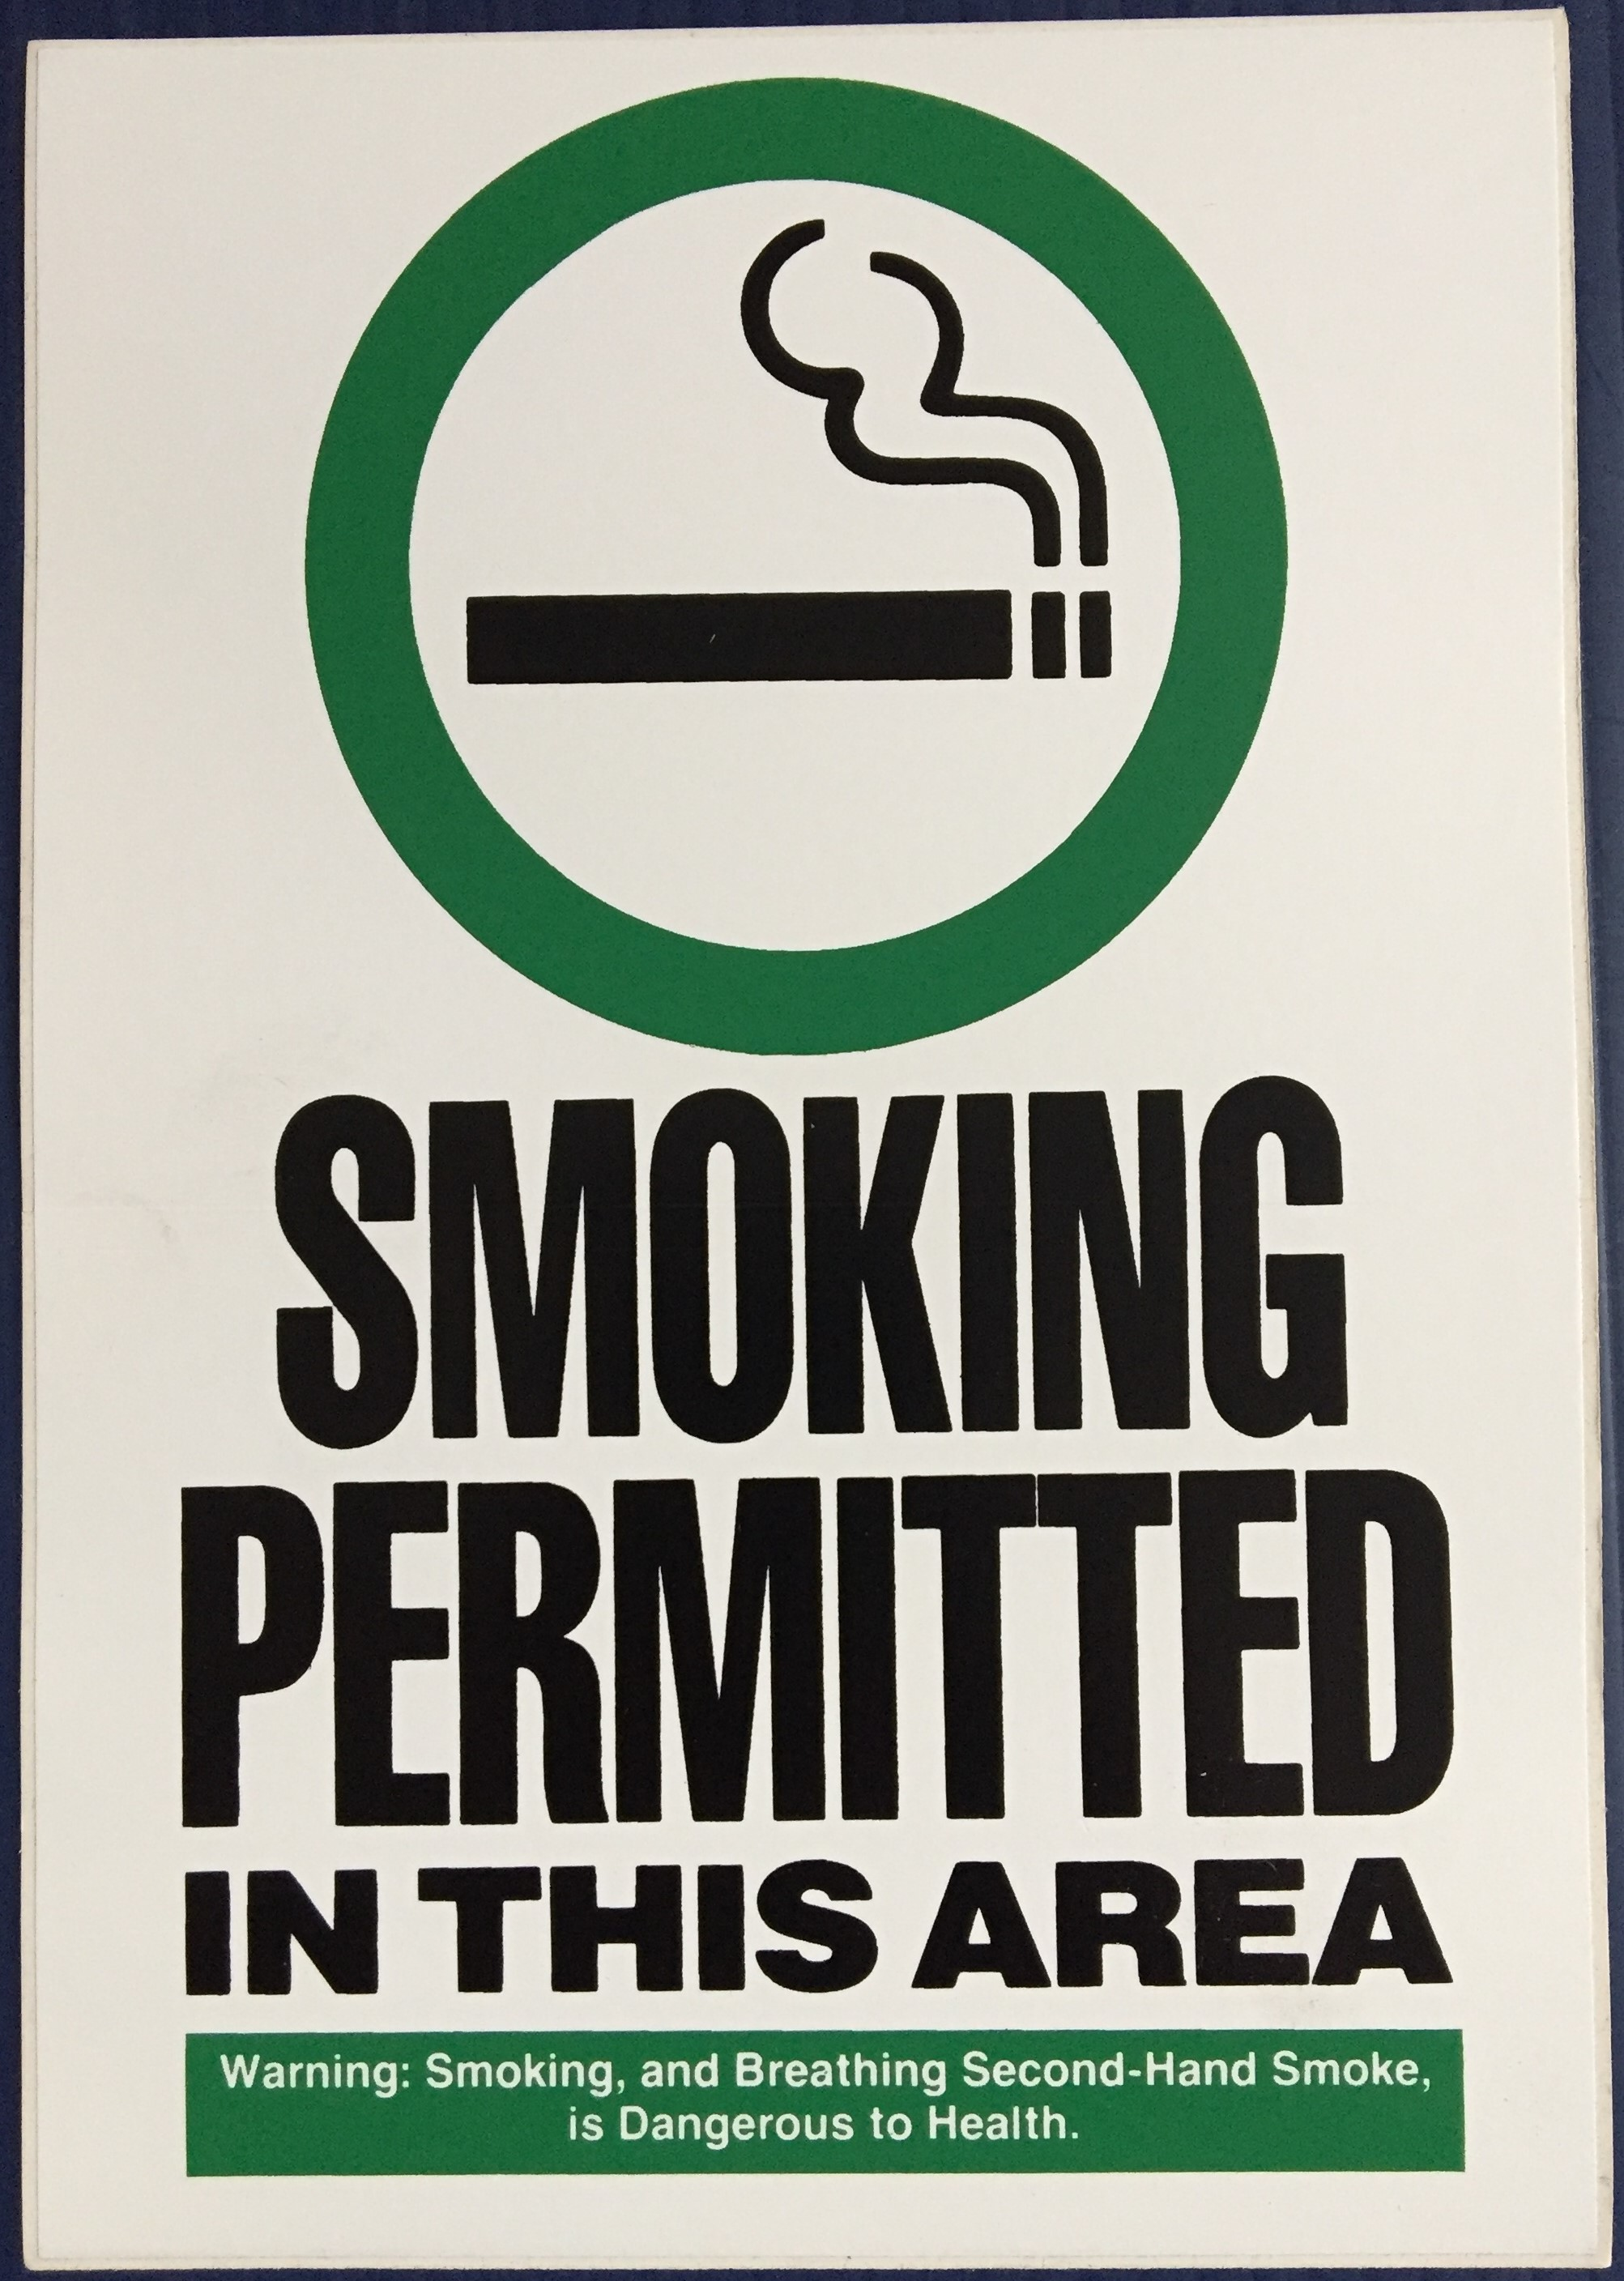 #CL207  6x9 Vinyl Sticker-Smoking Permit